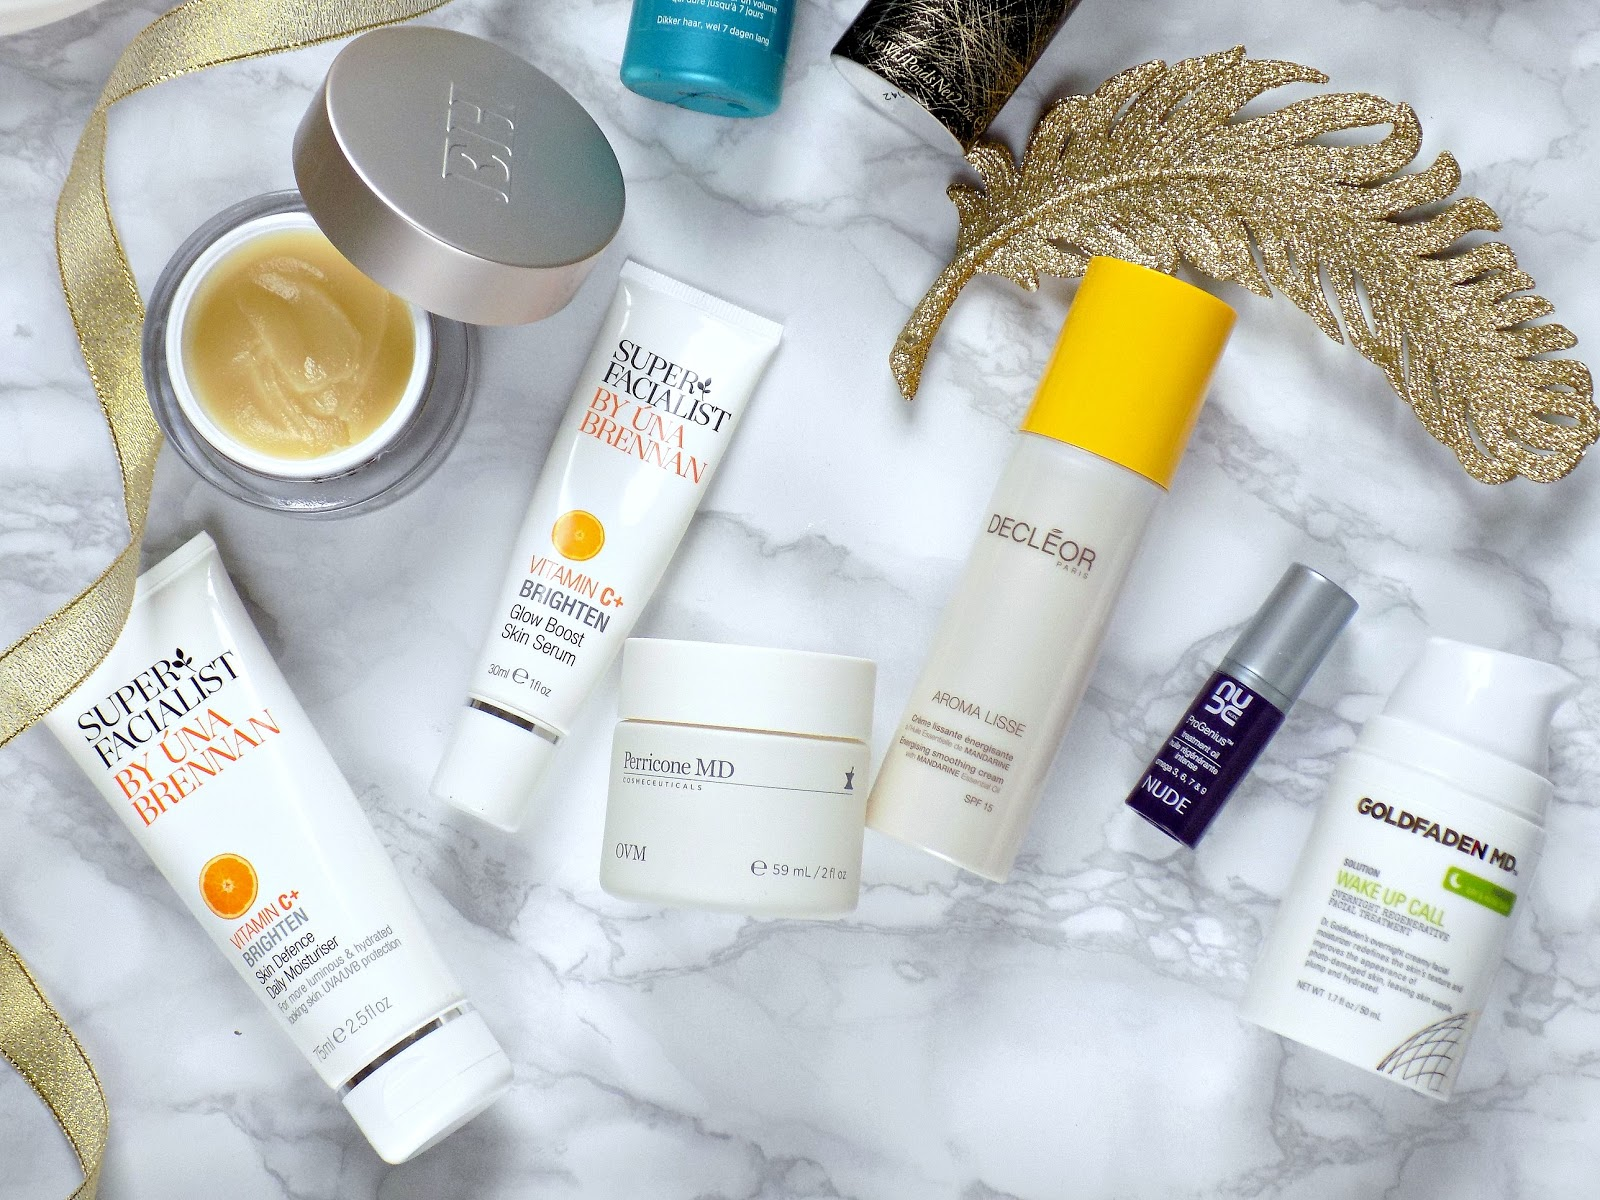 Best beauty discoveries of 2016 - skincare, Perricone MD, Una Brennan, Goldfaden MD